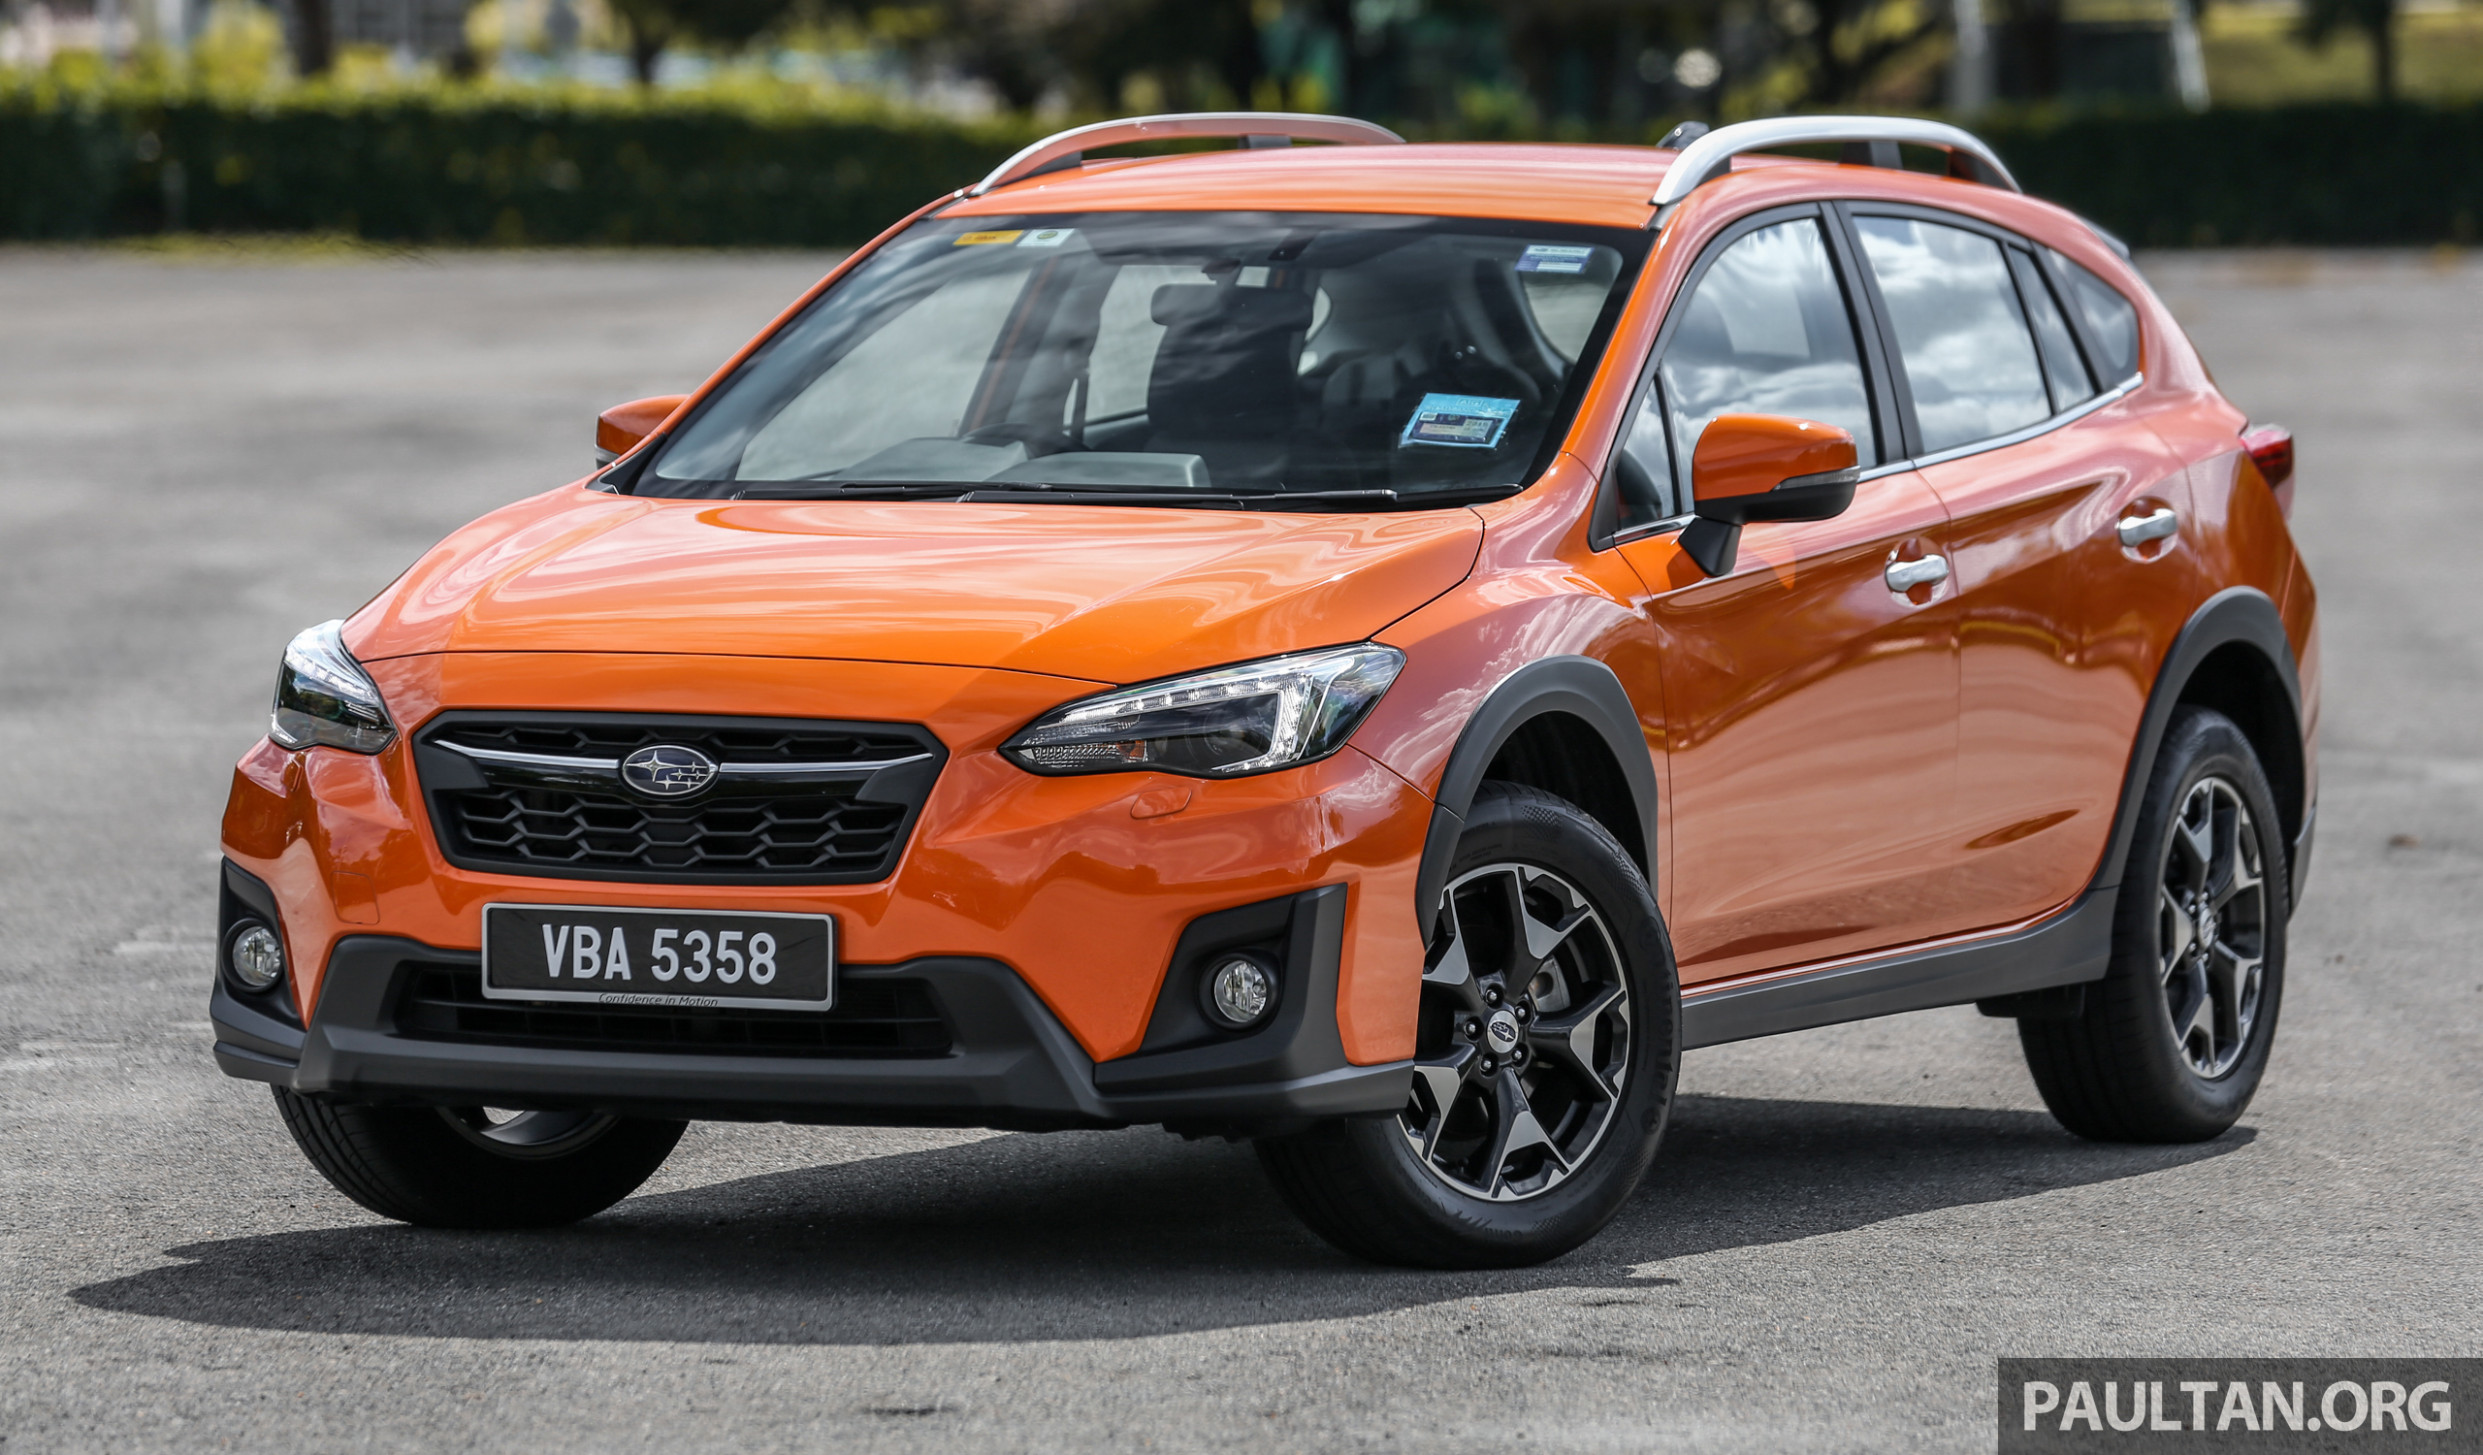 Price Subaru Xv 2022 Review